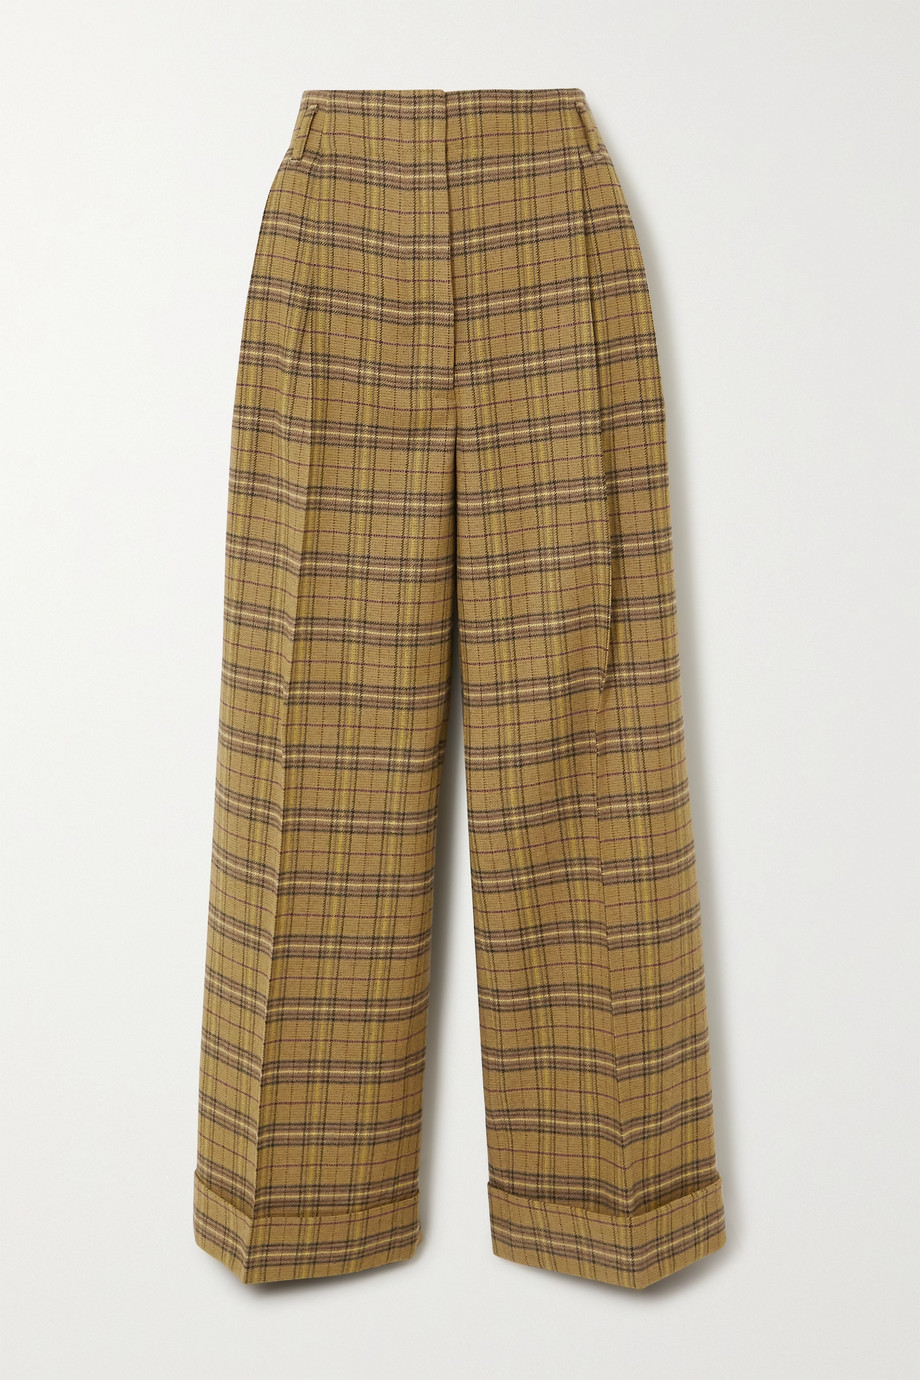 Acne Studios Checked wool-blend wide-leg pants